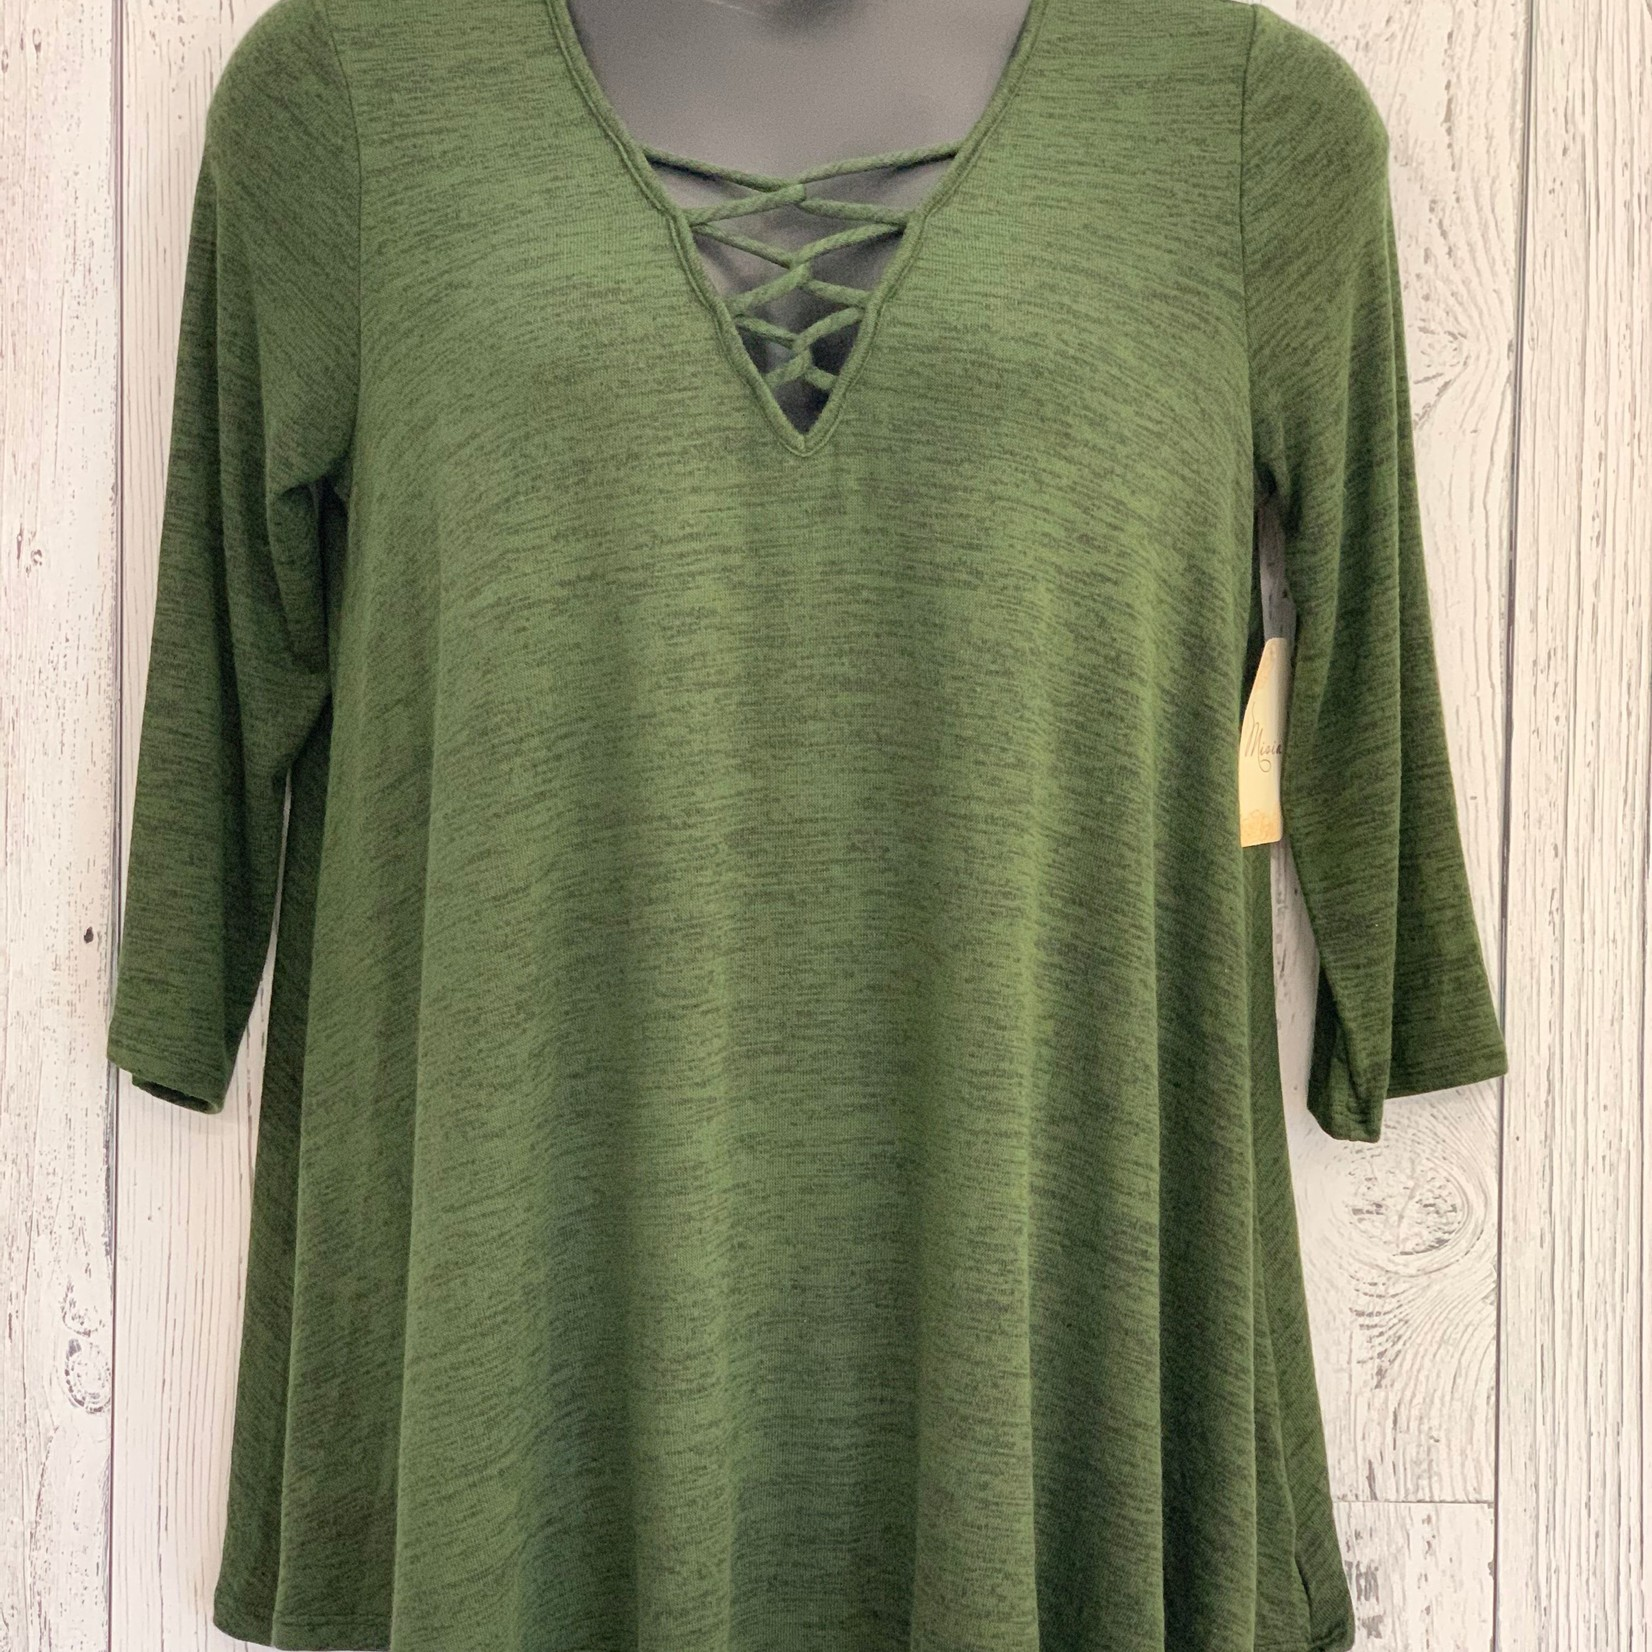 curvy cross neckline swing tunic